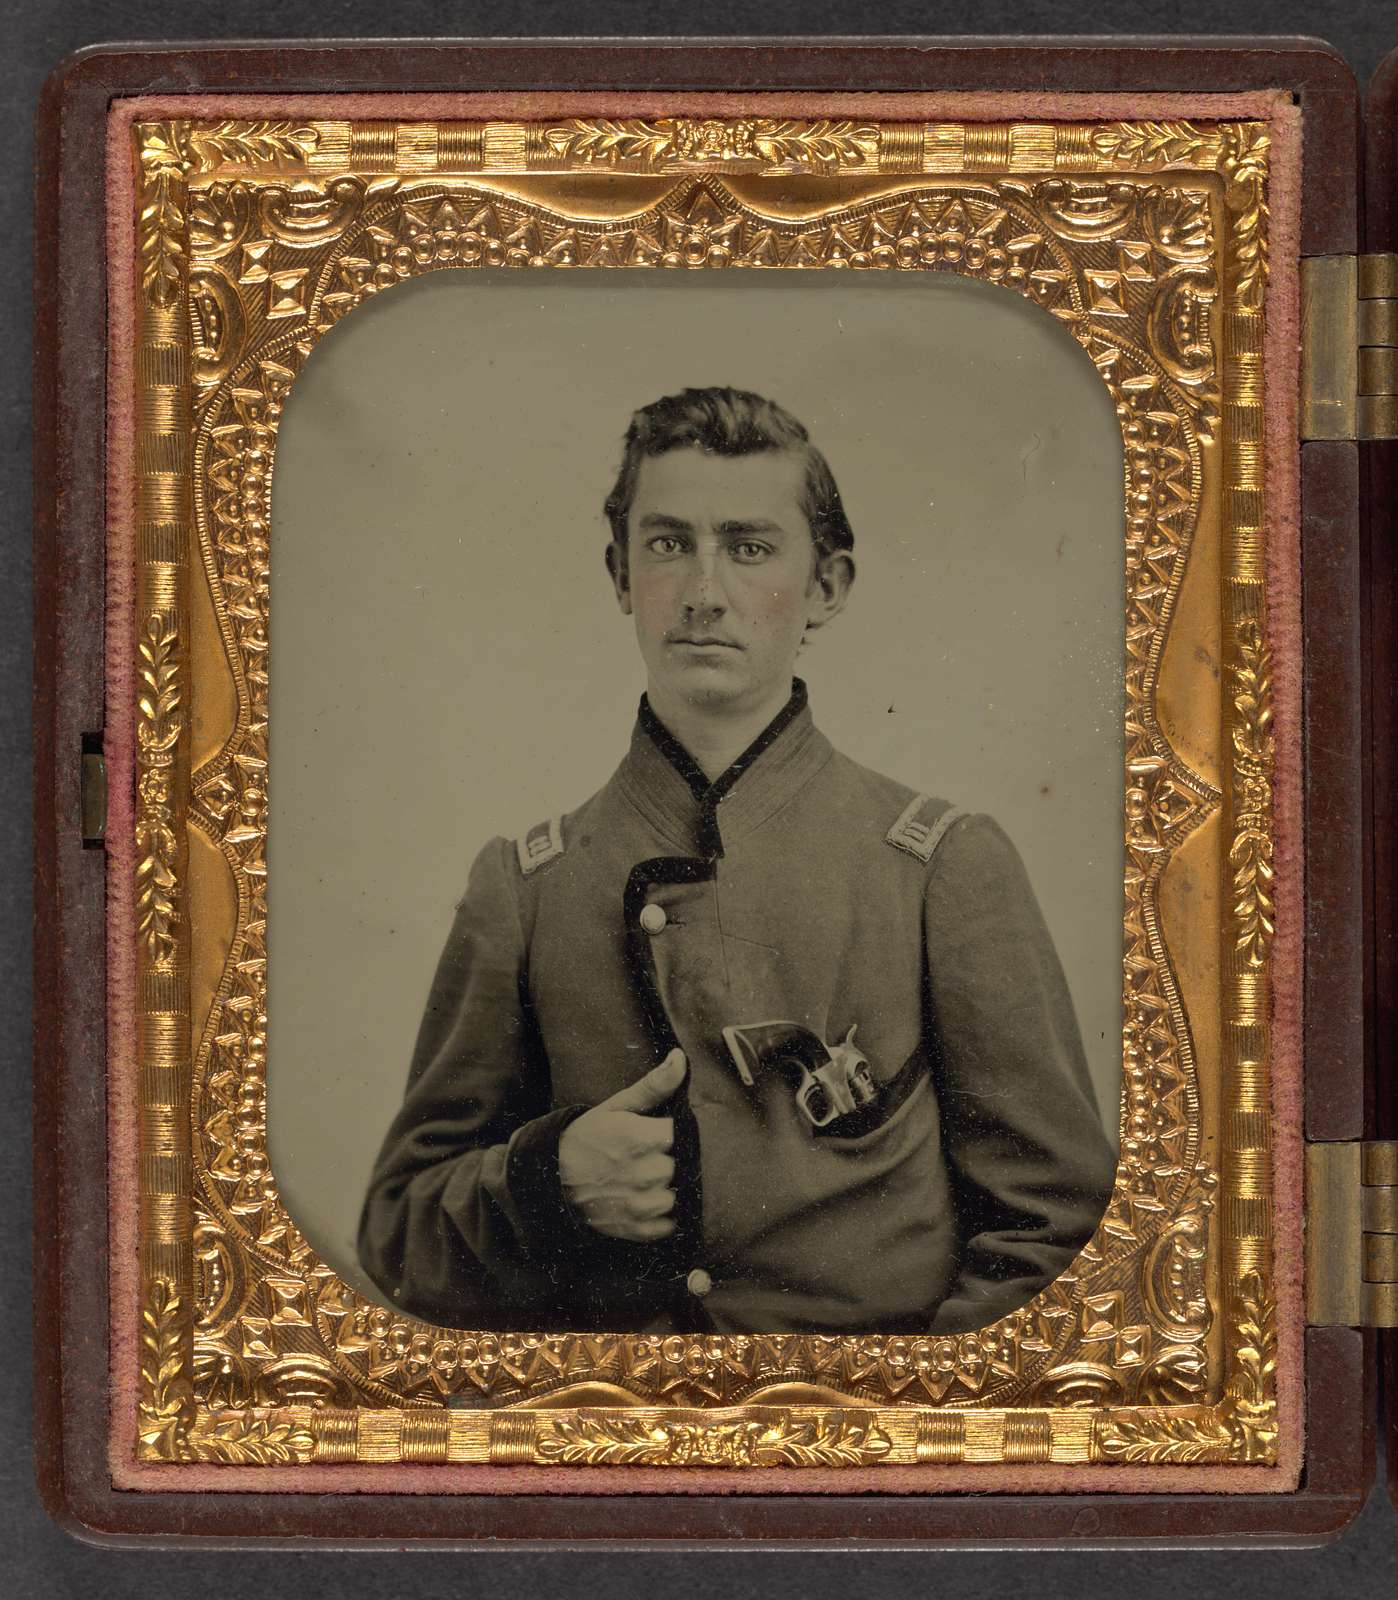 [Unidentified soldier in Union captain's uniform with revolver in breast pocket]